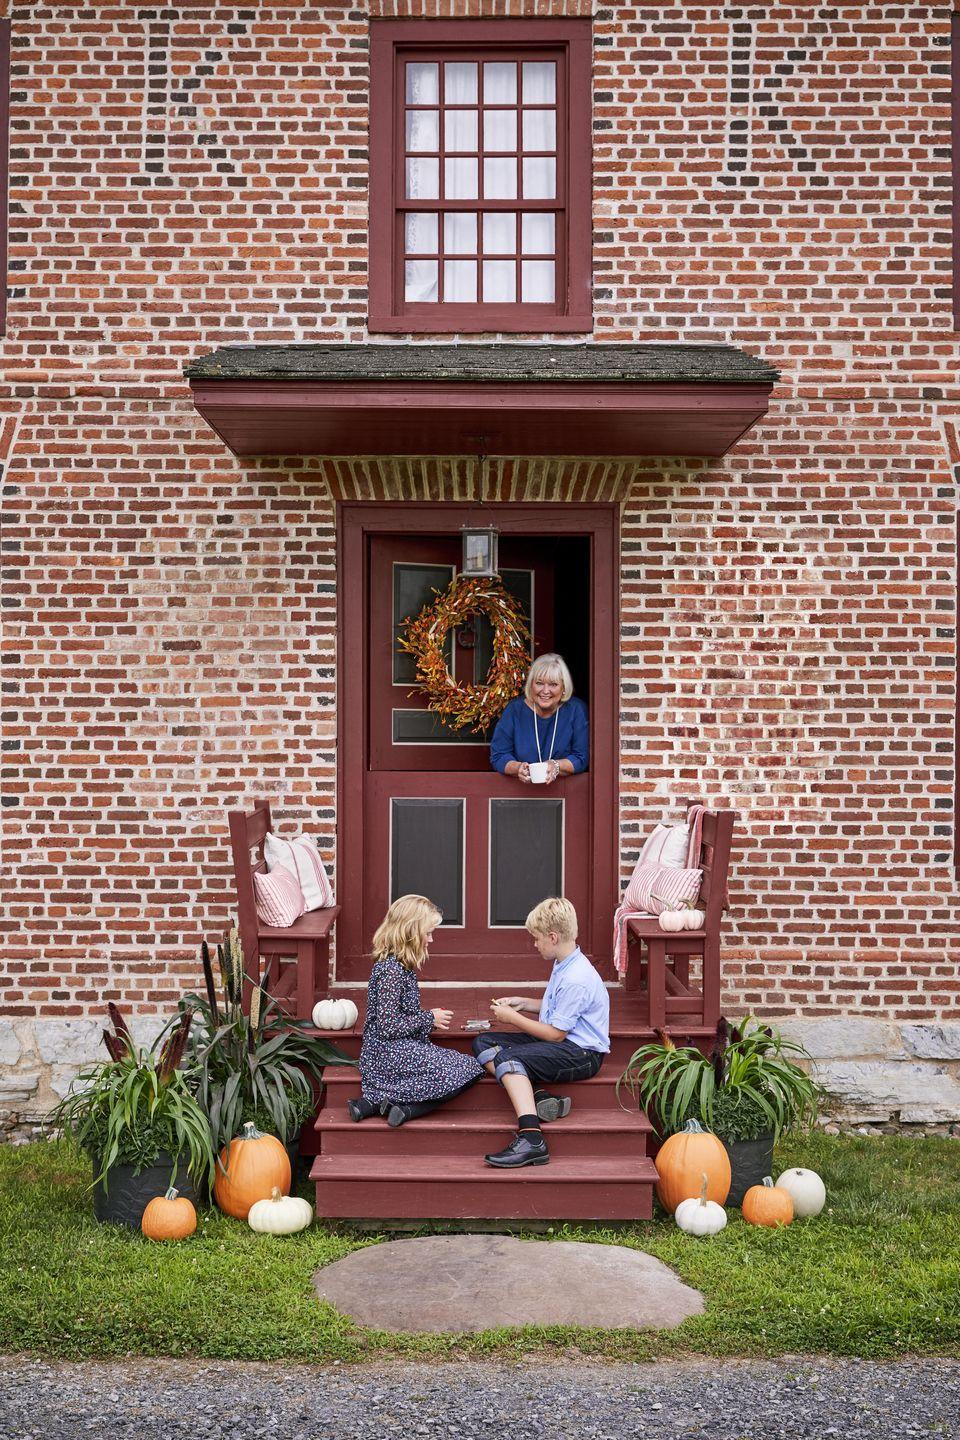 <p>This Dutch door and wee porch gets an oversize wreath made from a mixture of fall foliage. Pillows on built-in benches lend a soft touch.</p>